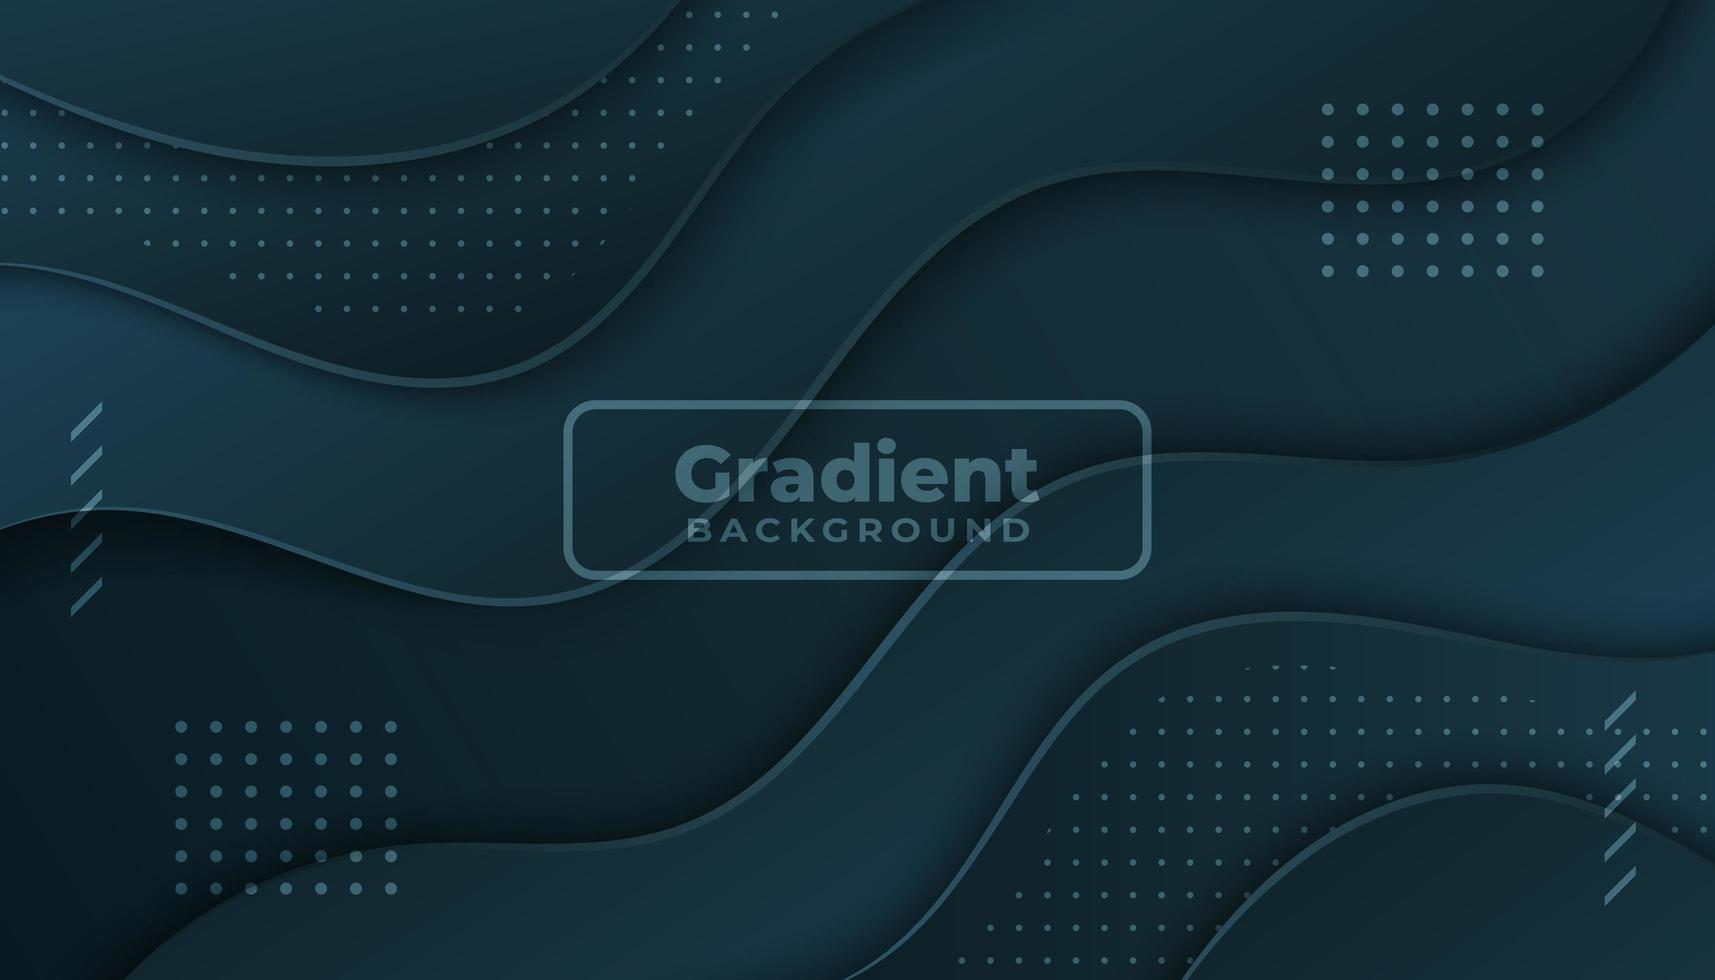 Dark Background with Overlapping Wavy Layers